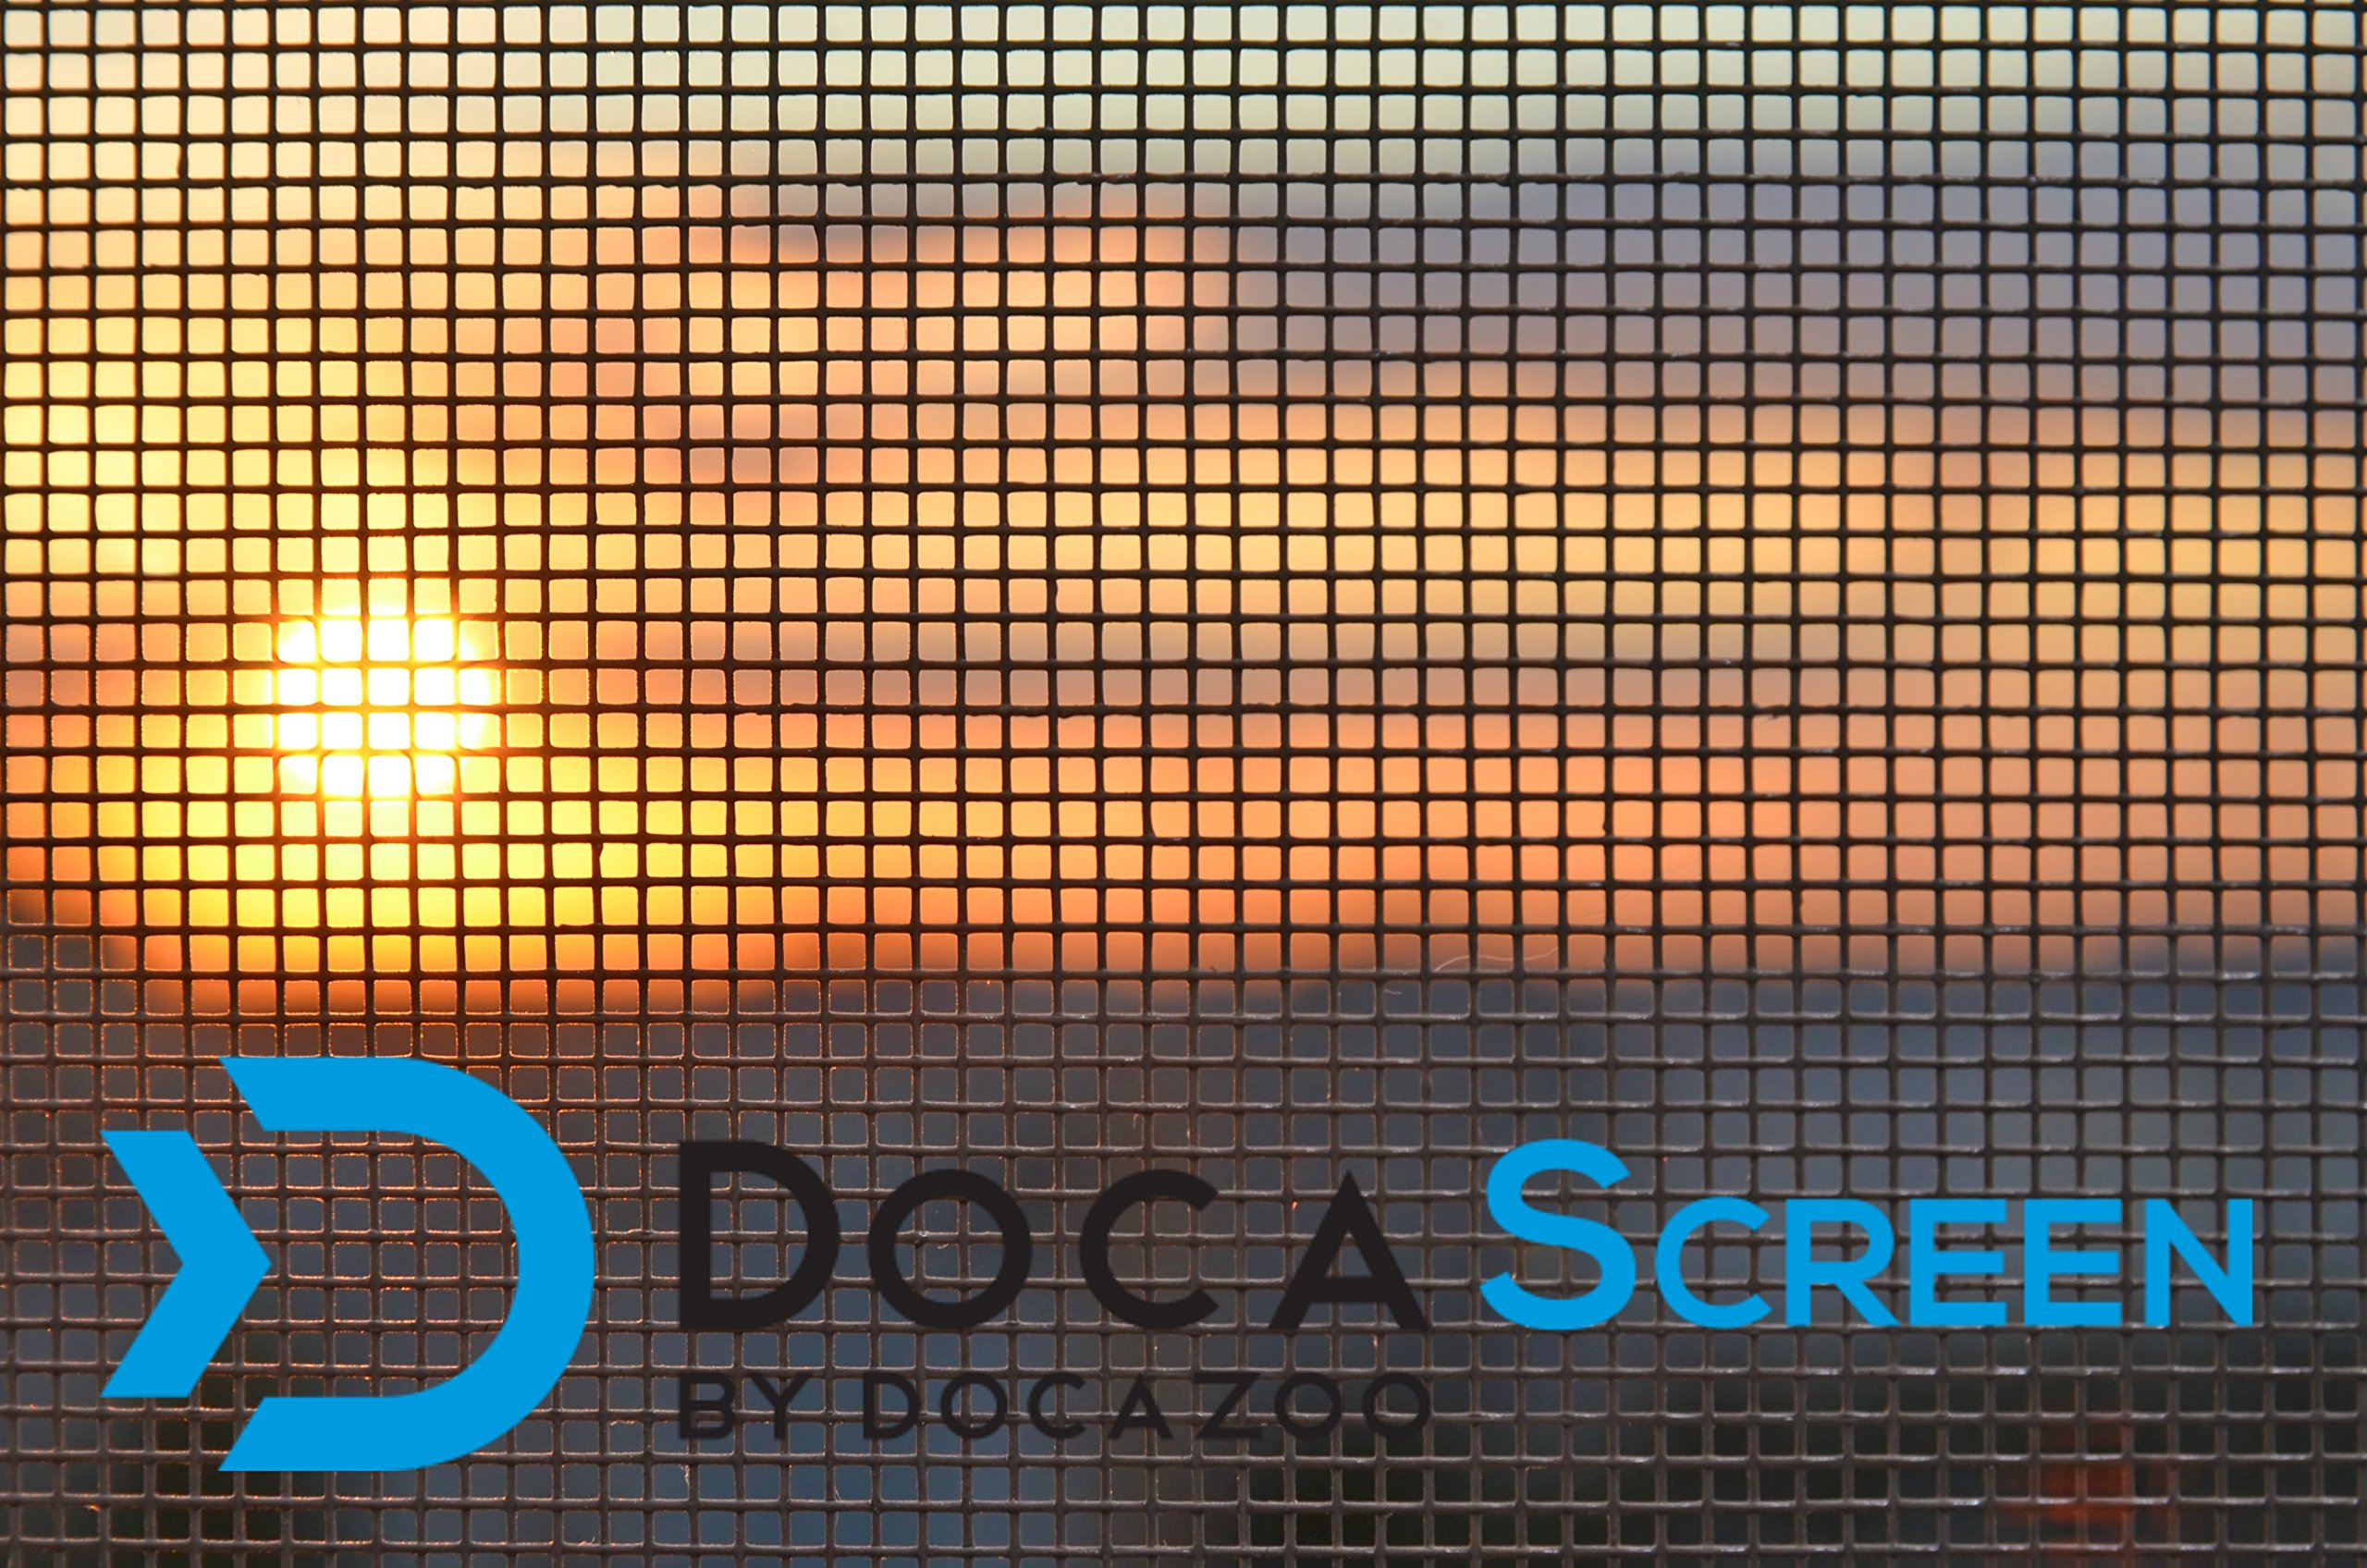 "DocaScreen Standard Window Screen Roll – 48"" x 100' Fiberglass Screen Roll – Window, Door and Patio Screen – Insect Screen//Fiberglass Screening//Screen Replacement//Window Screens by DOCAZOO (Image #1)"